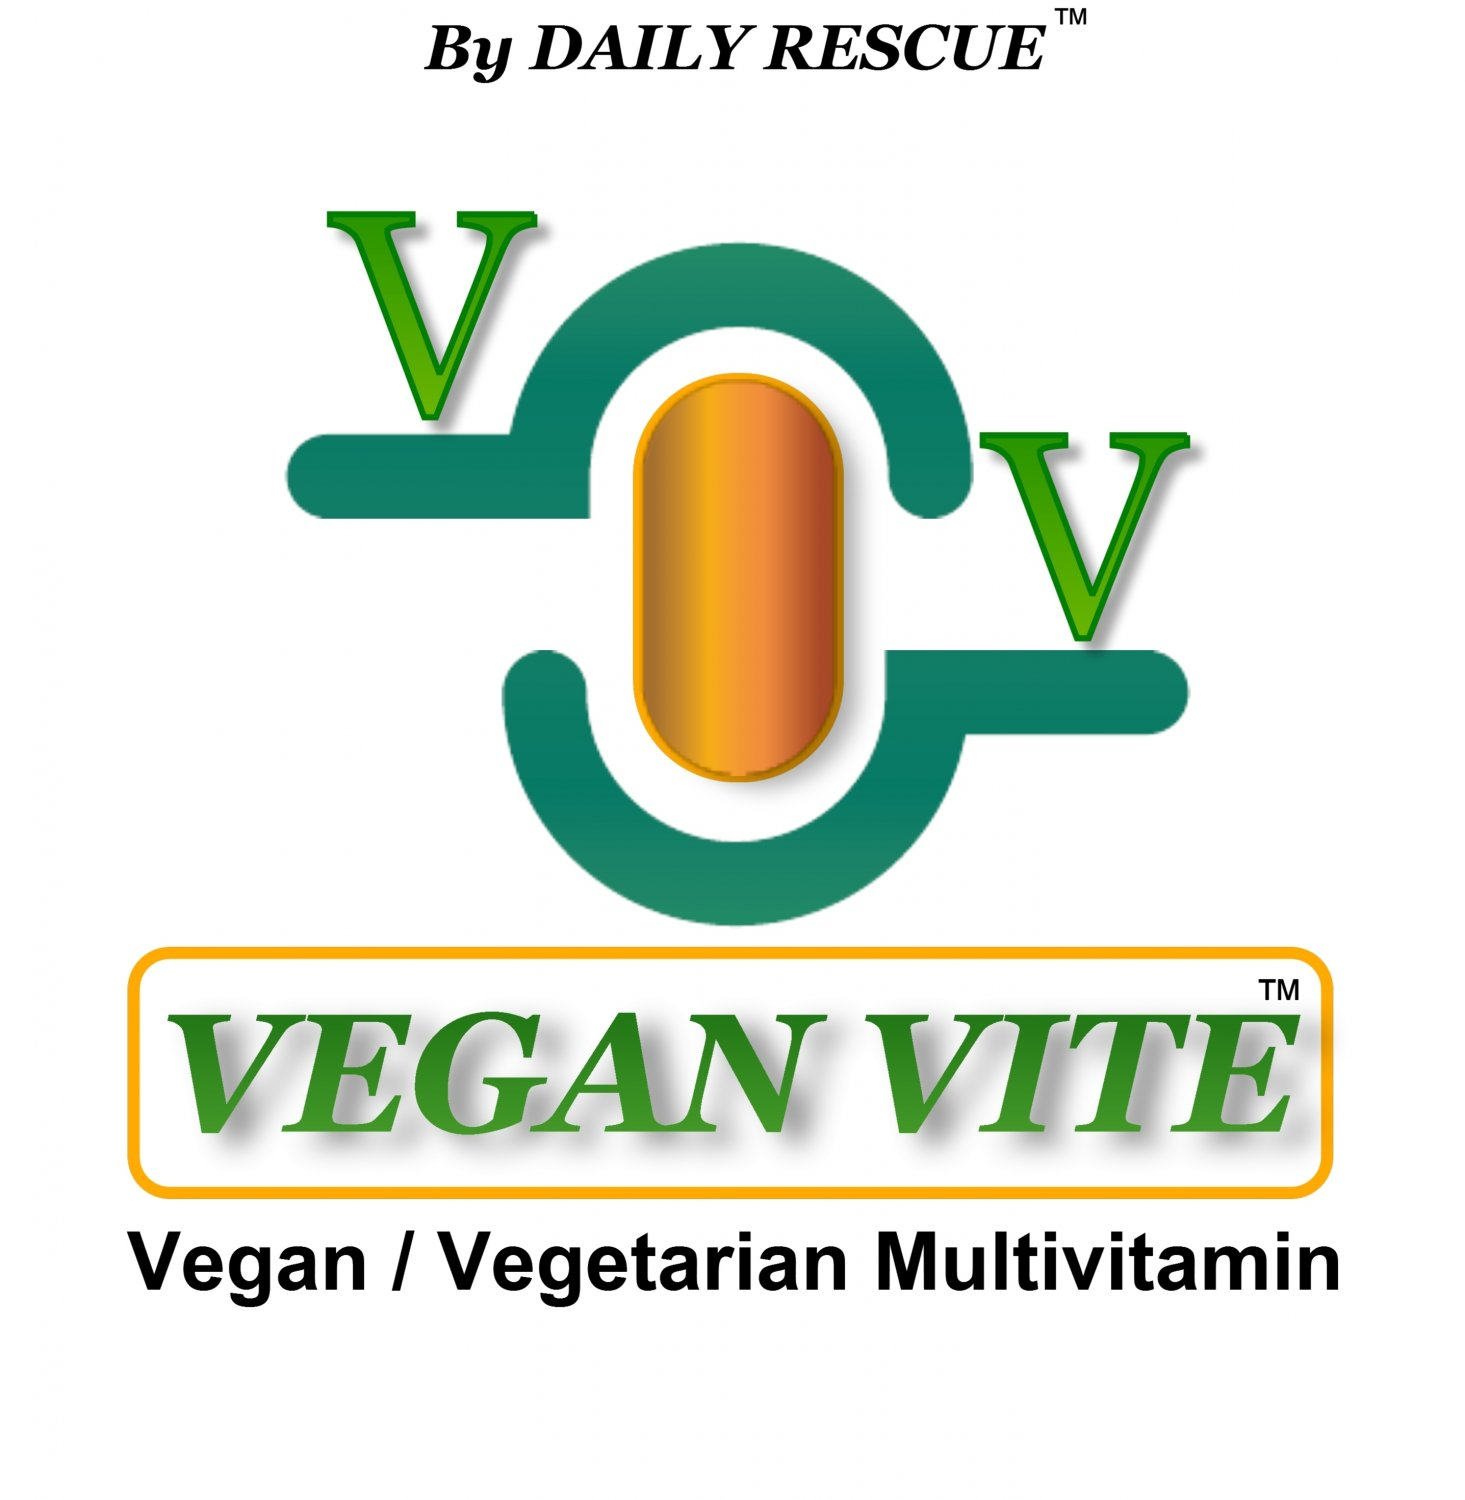 VEGAN VITE � Best / Advanced Vegetarian Multi-Vitamin Supplement for Men & Women